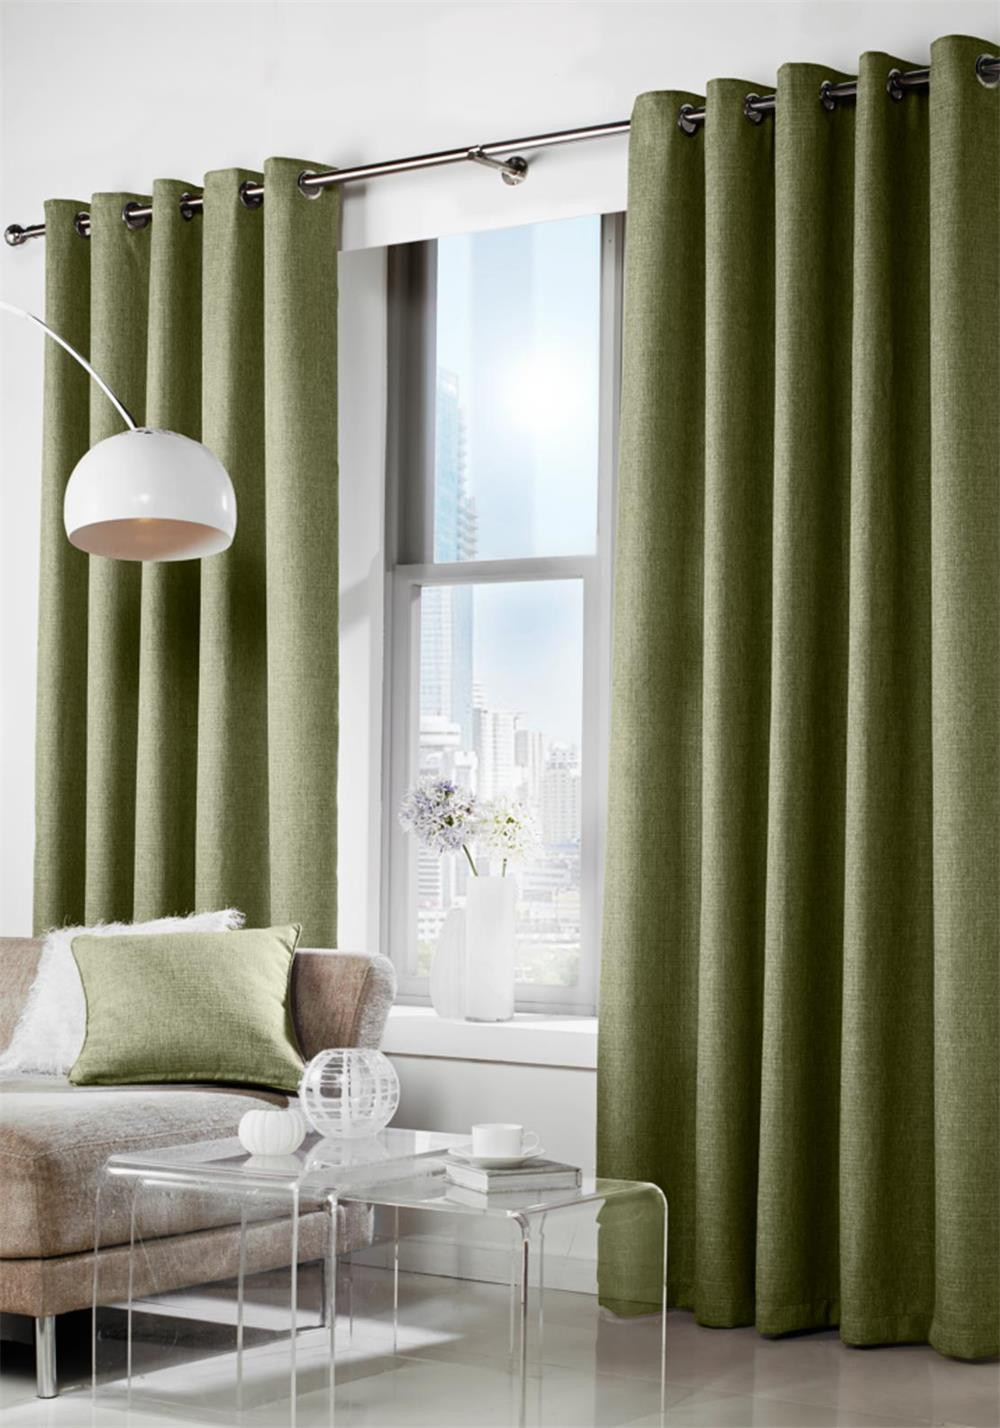 Curtina Leighton Readymade Luxury Eyelet Curtains Fully Lined, Green